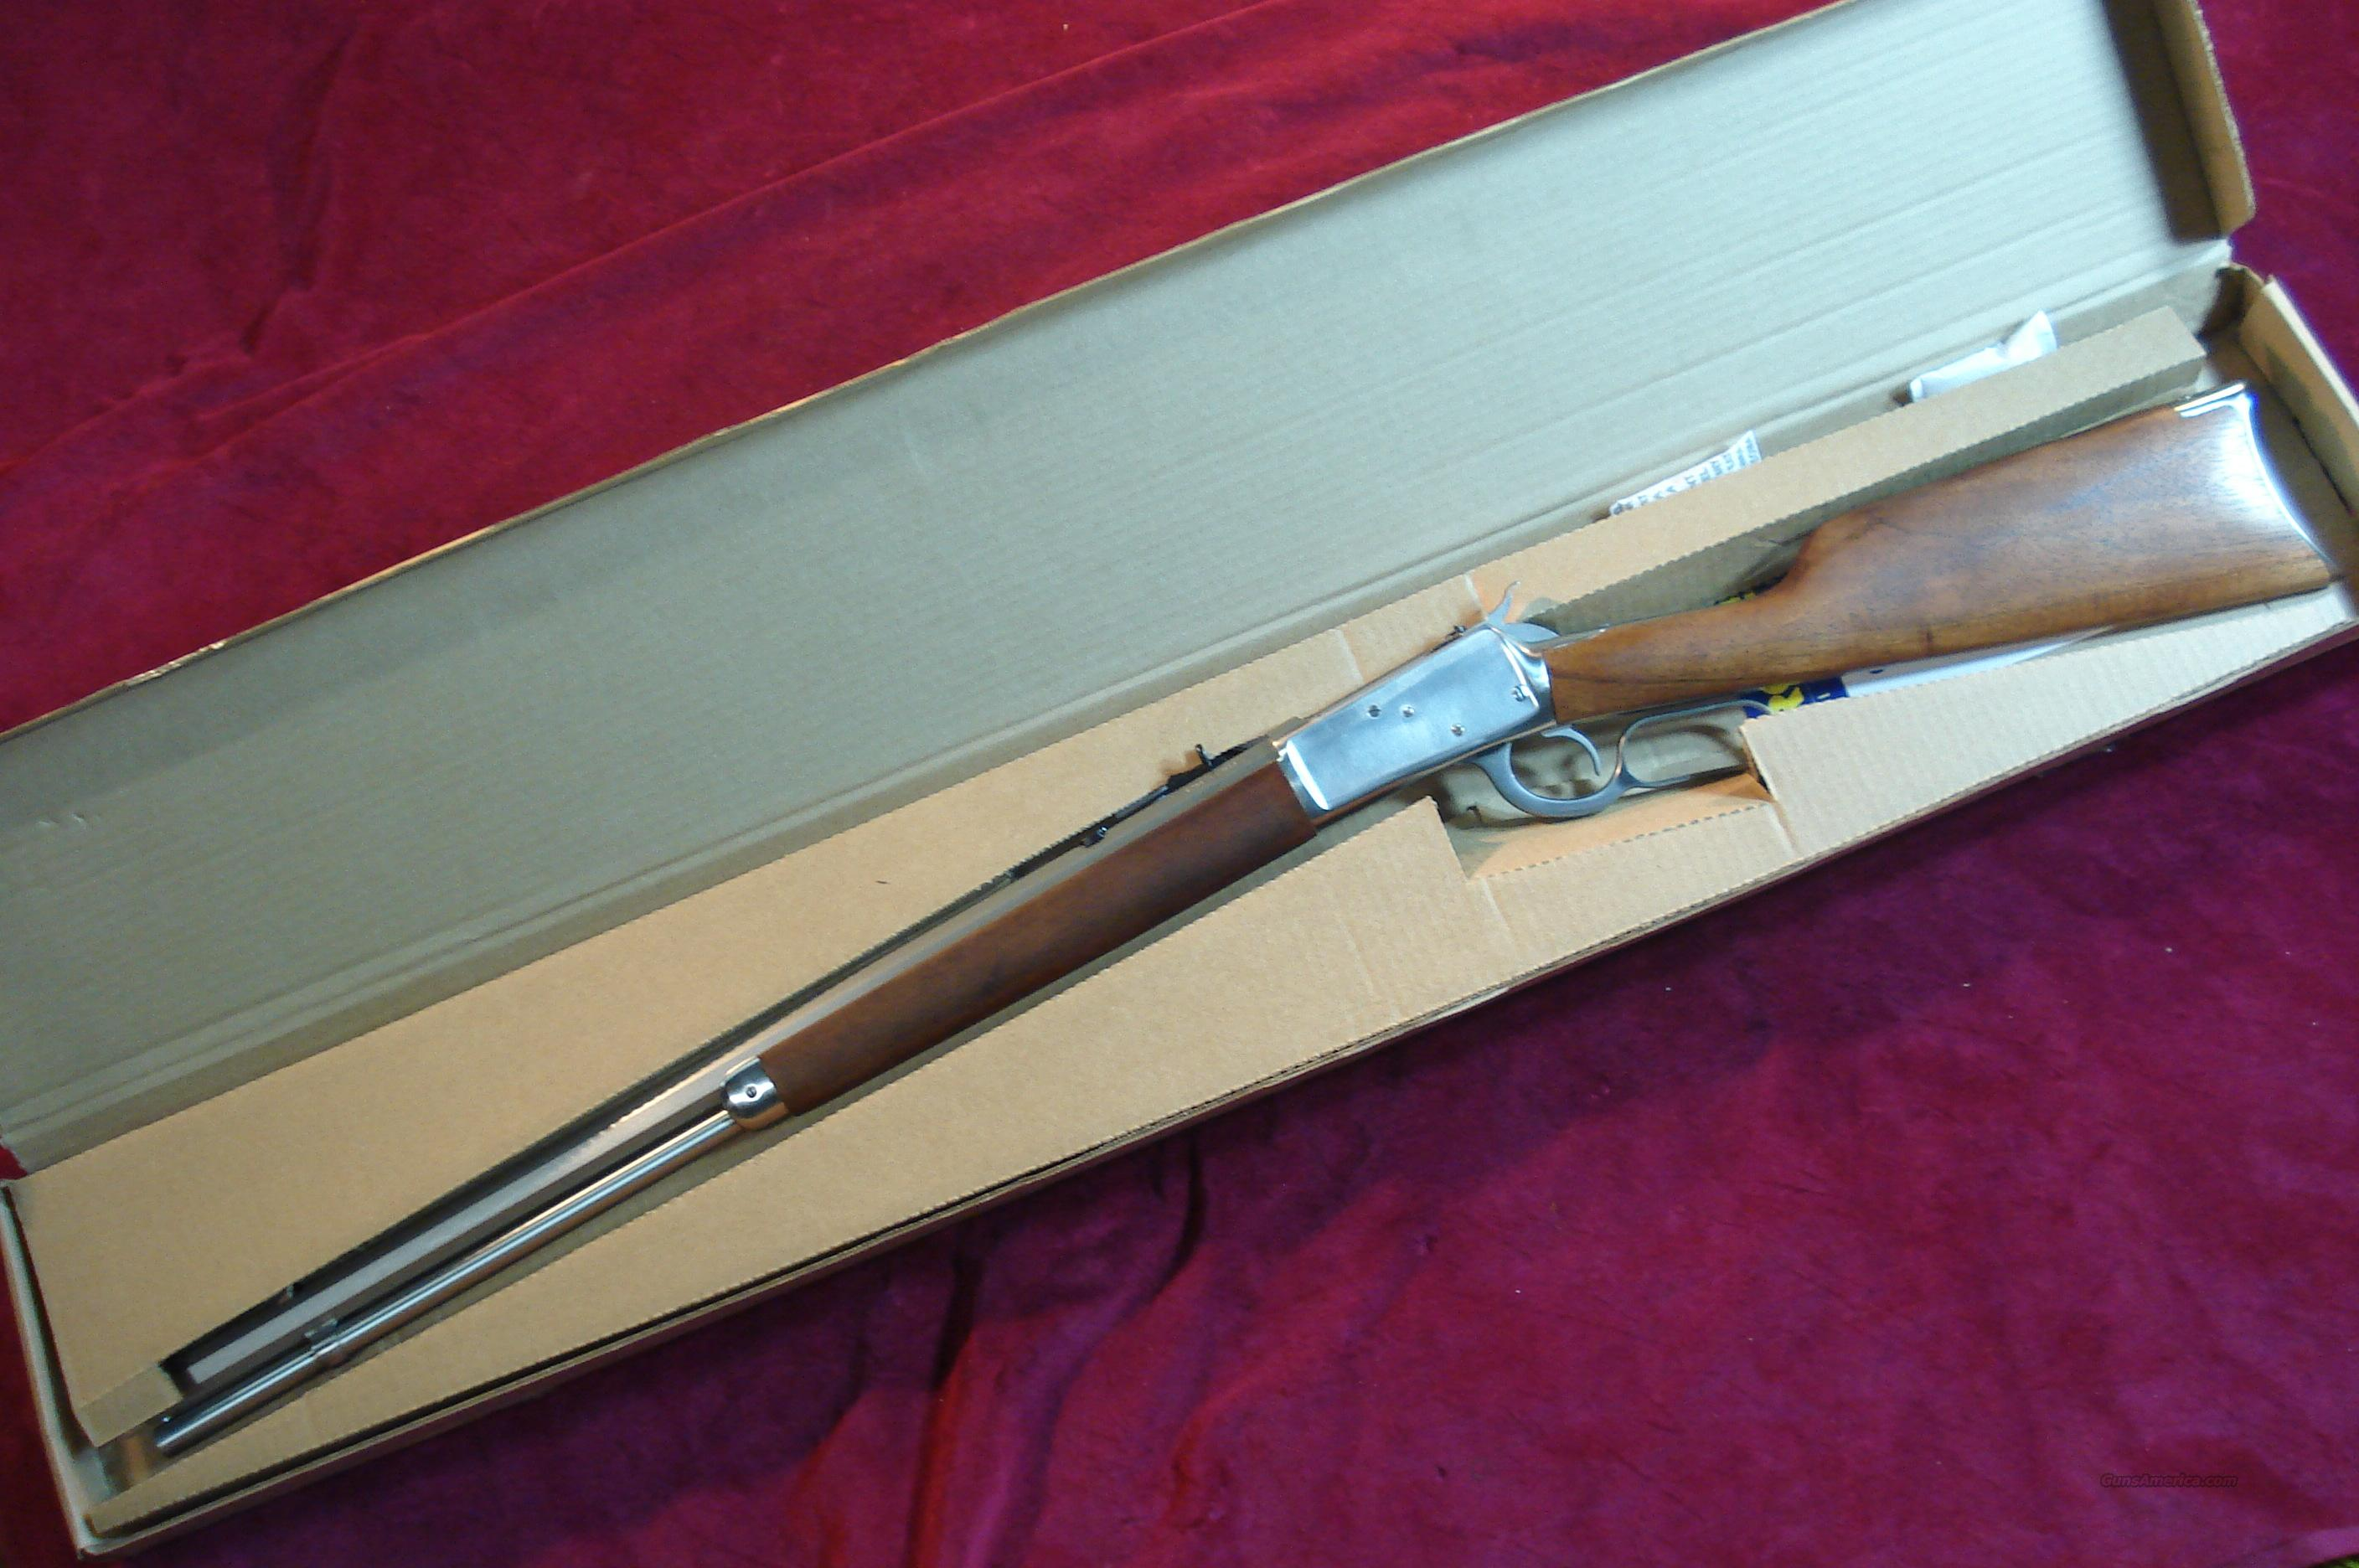 "ROSSI 92 LEVER ACTION 44MAGNUM CAL. 24"" OCTAGON BARREL STAINLESS NEW  Guns > Rifles > Rossi Rifles > Cowboy"